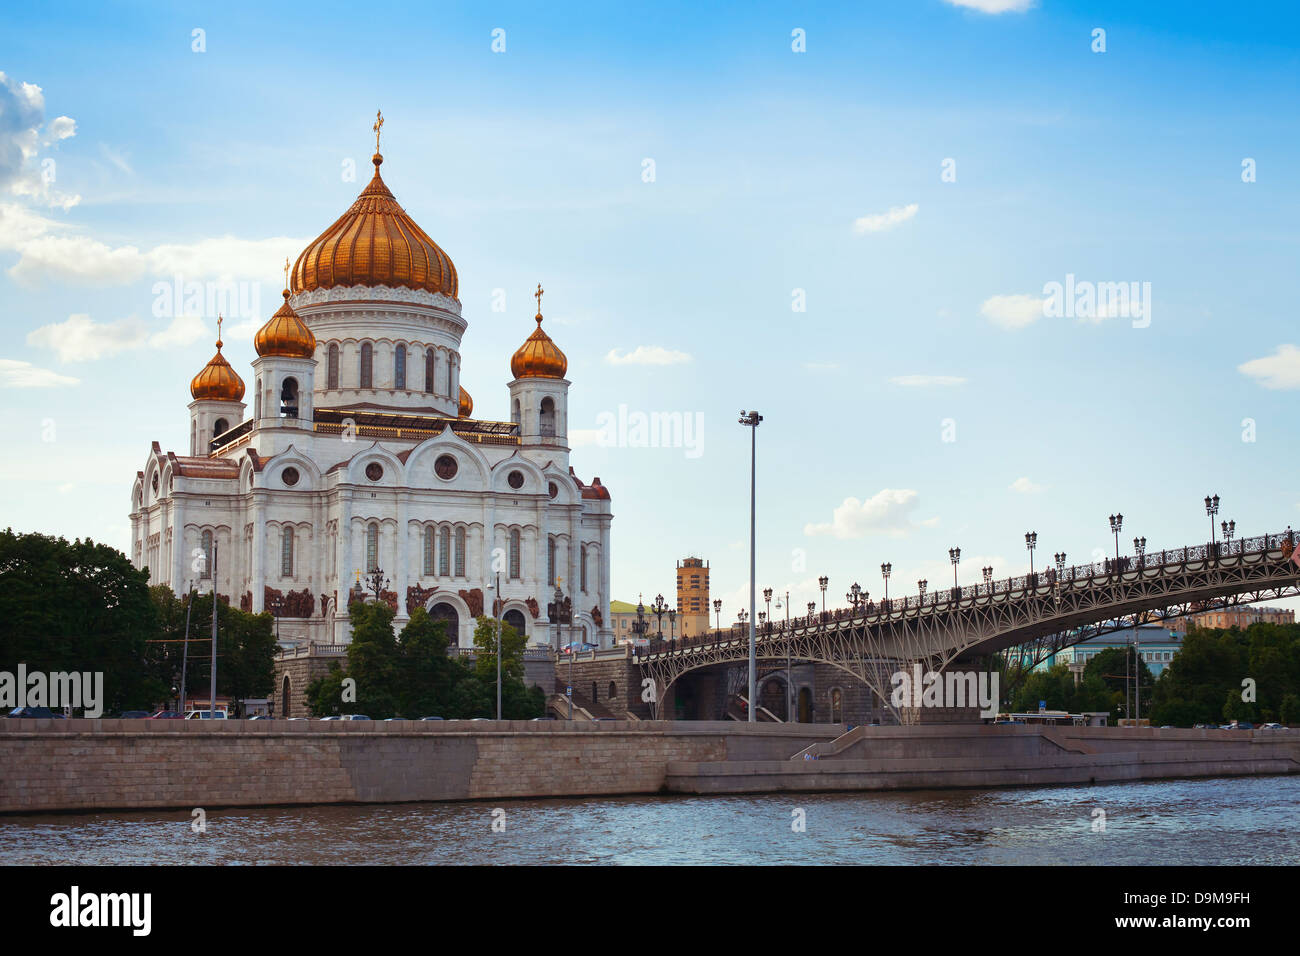 Cathedral of Christ the Savior in Moscow, Russia - Stock Image